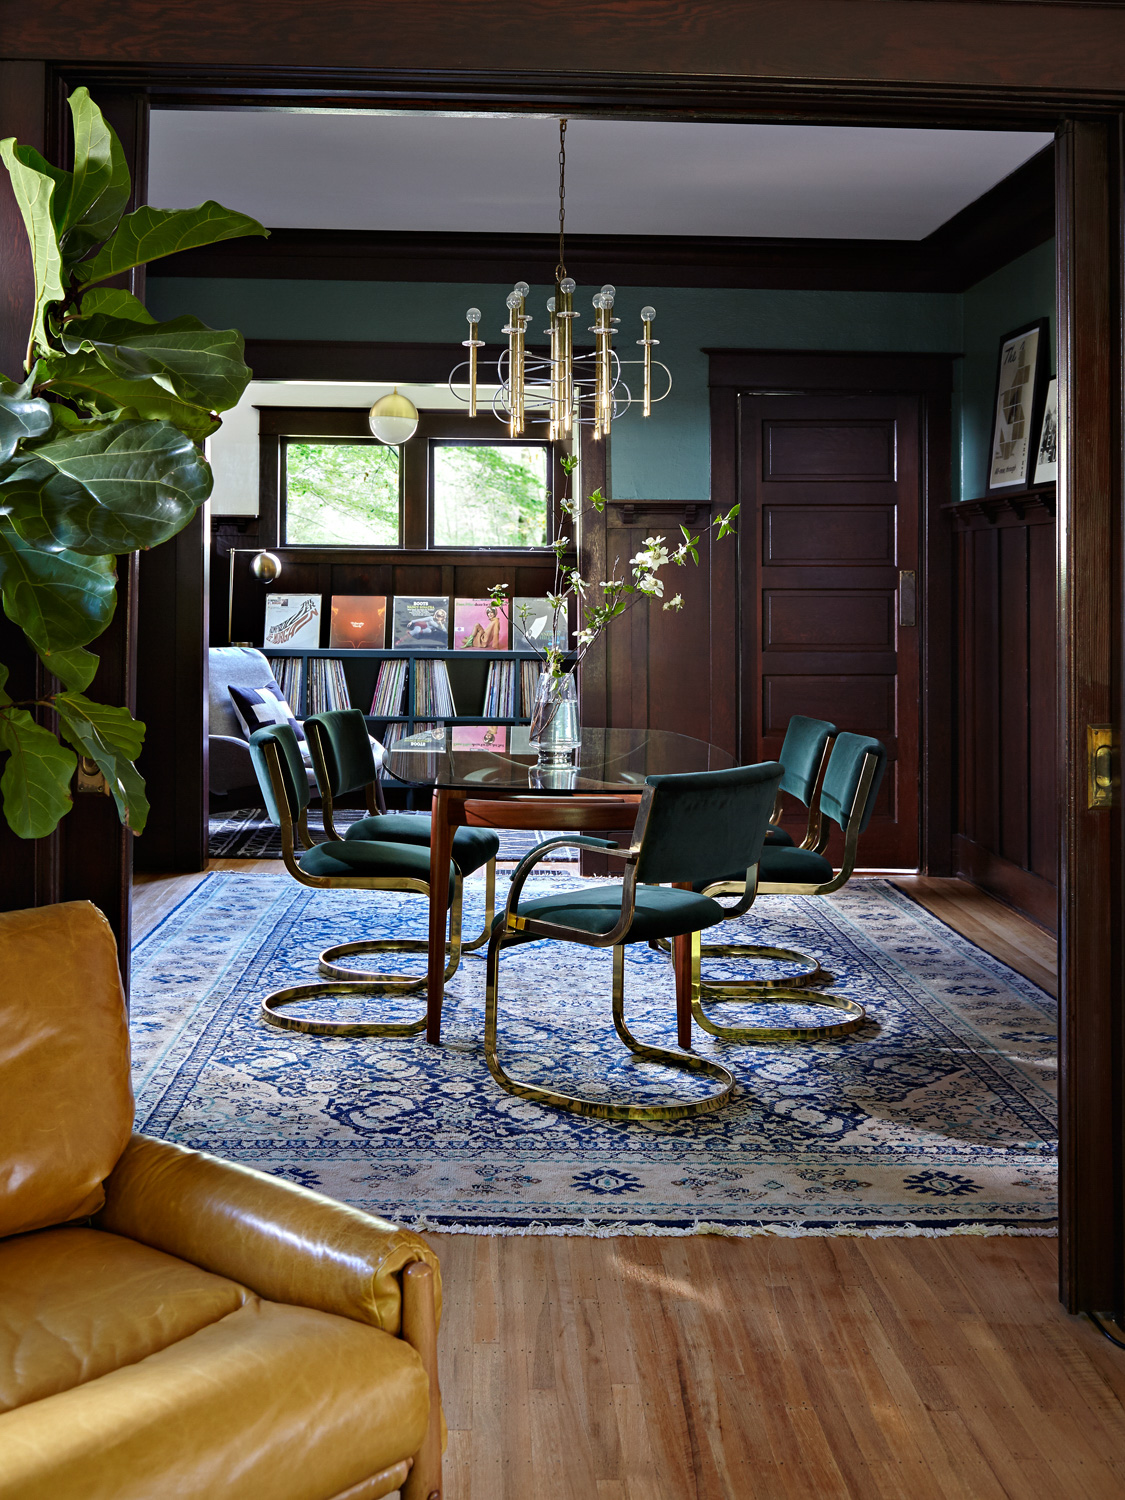 Moody Dining Room with Wainscoting | Casework Interior Design | Portland, OR